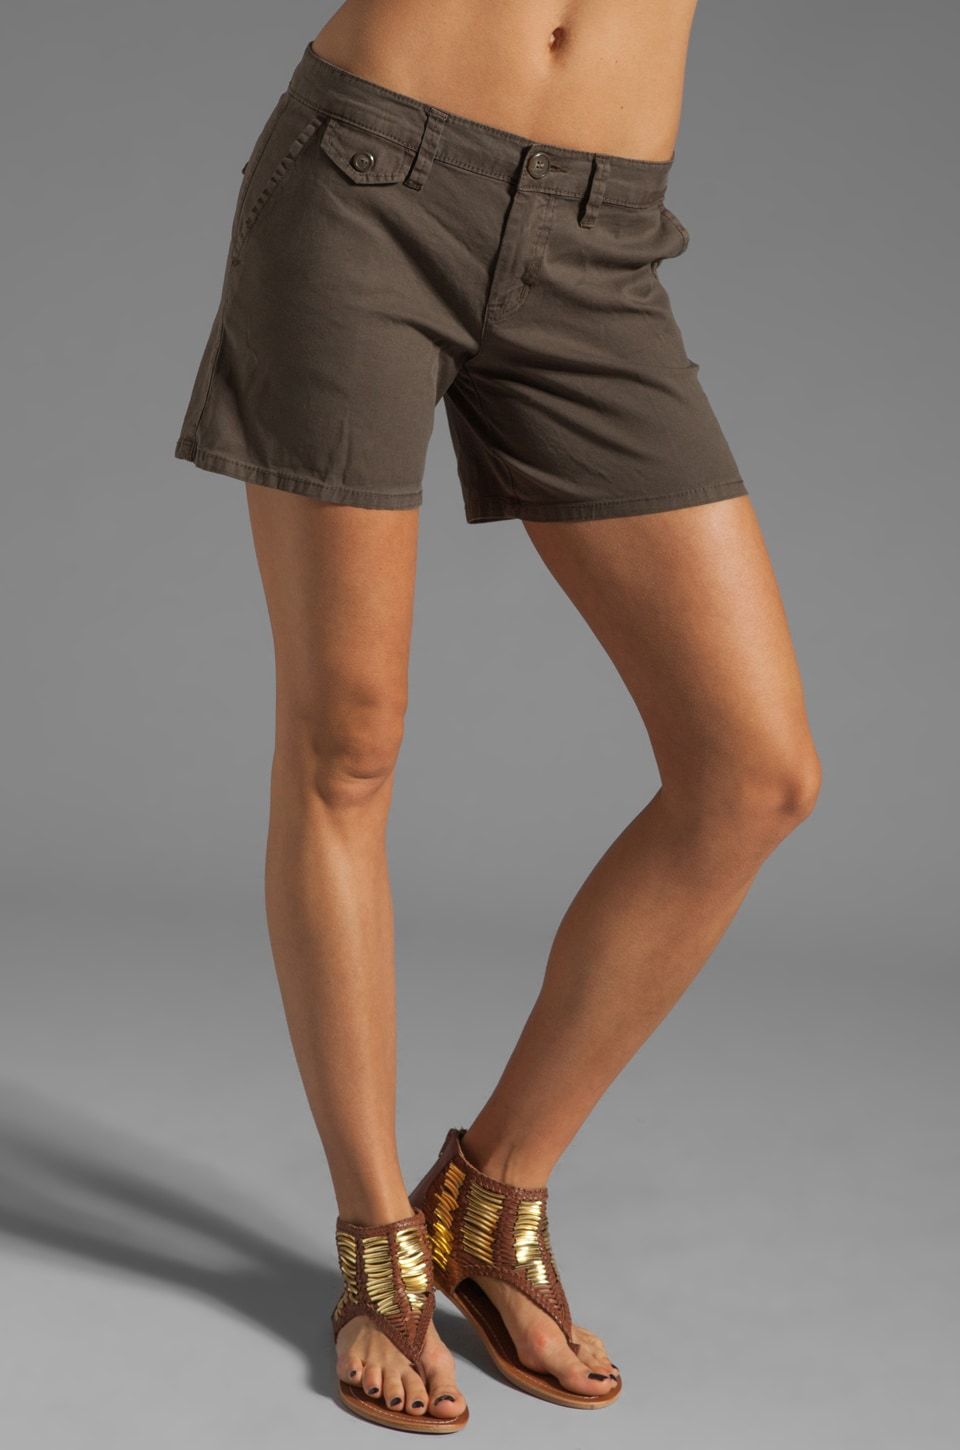 Sanctuary Boyfriend Baggy Short in Olive Green